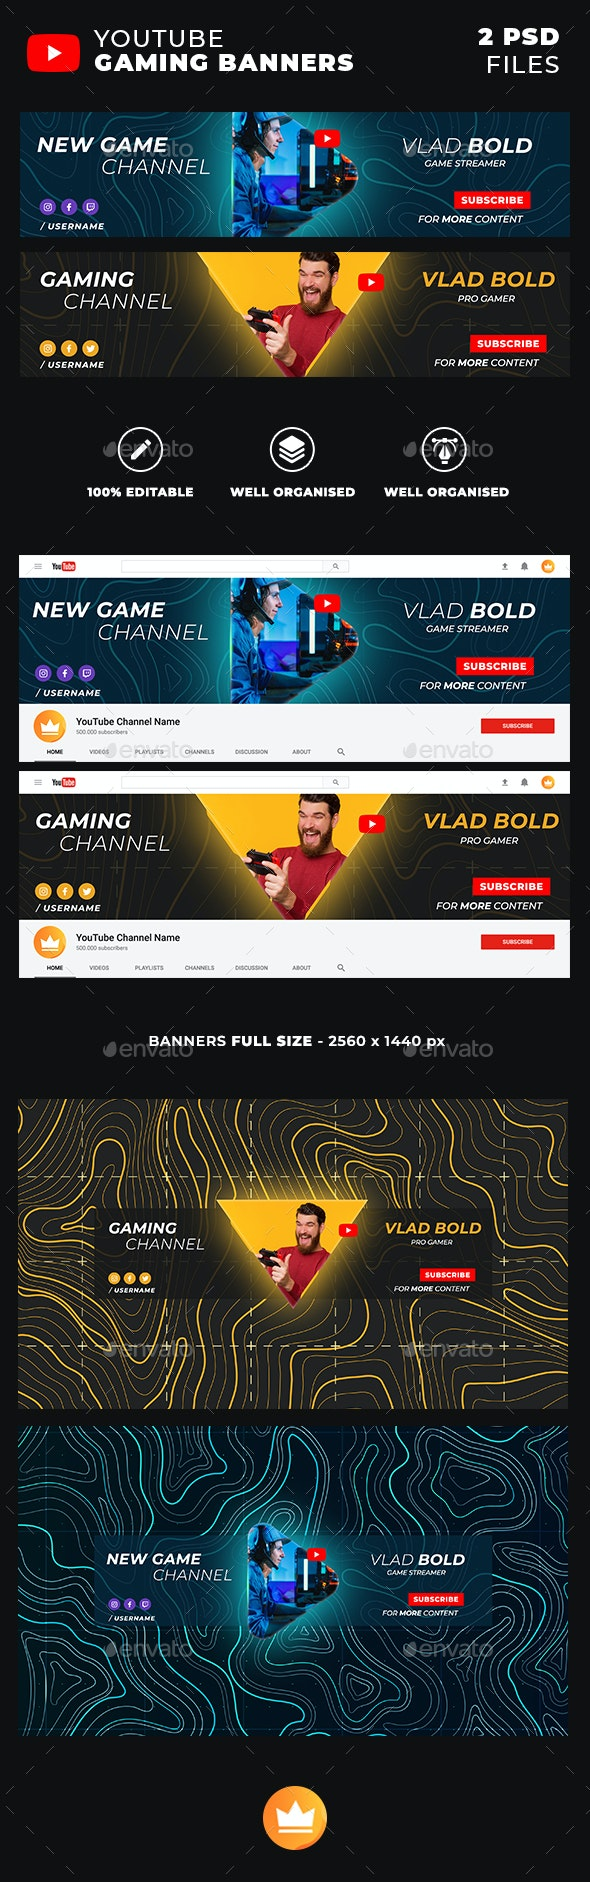 Stylish Gaming Youtube Banners / Covers - YouTube Social Media